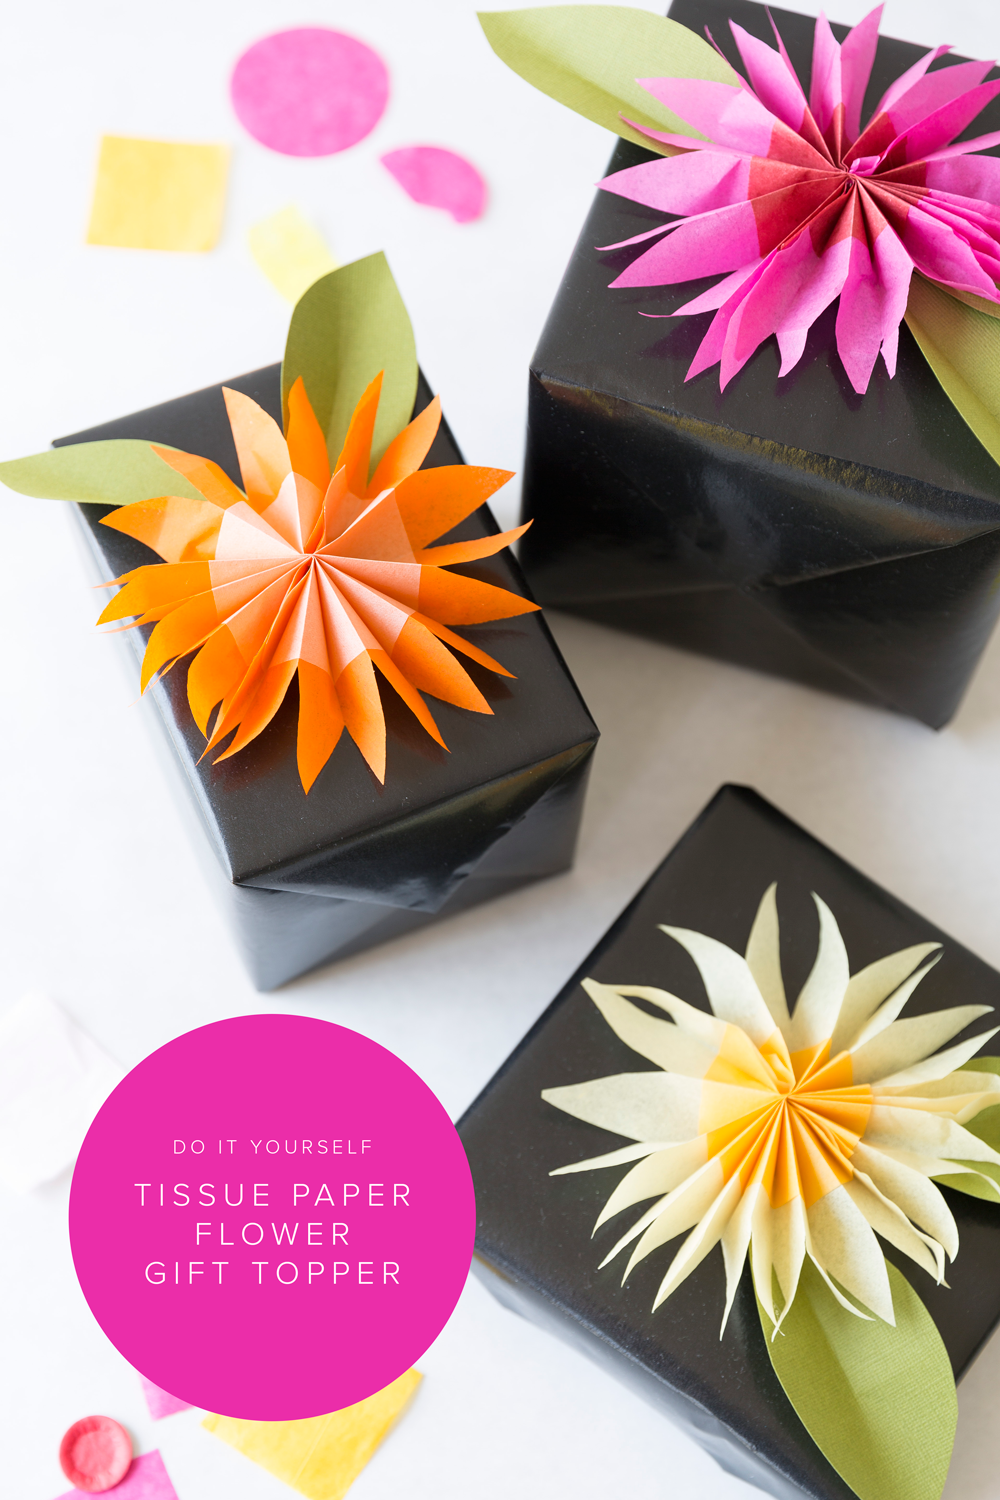 Diy Paper Tissue Flower Gift Topper